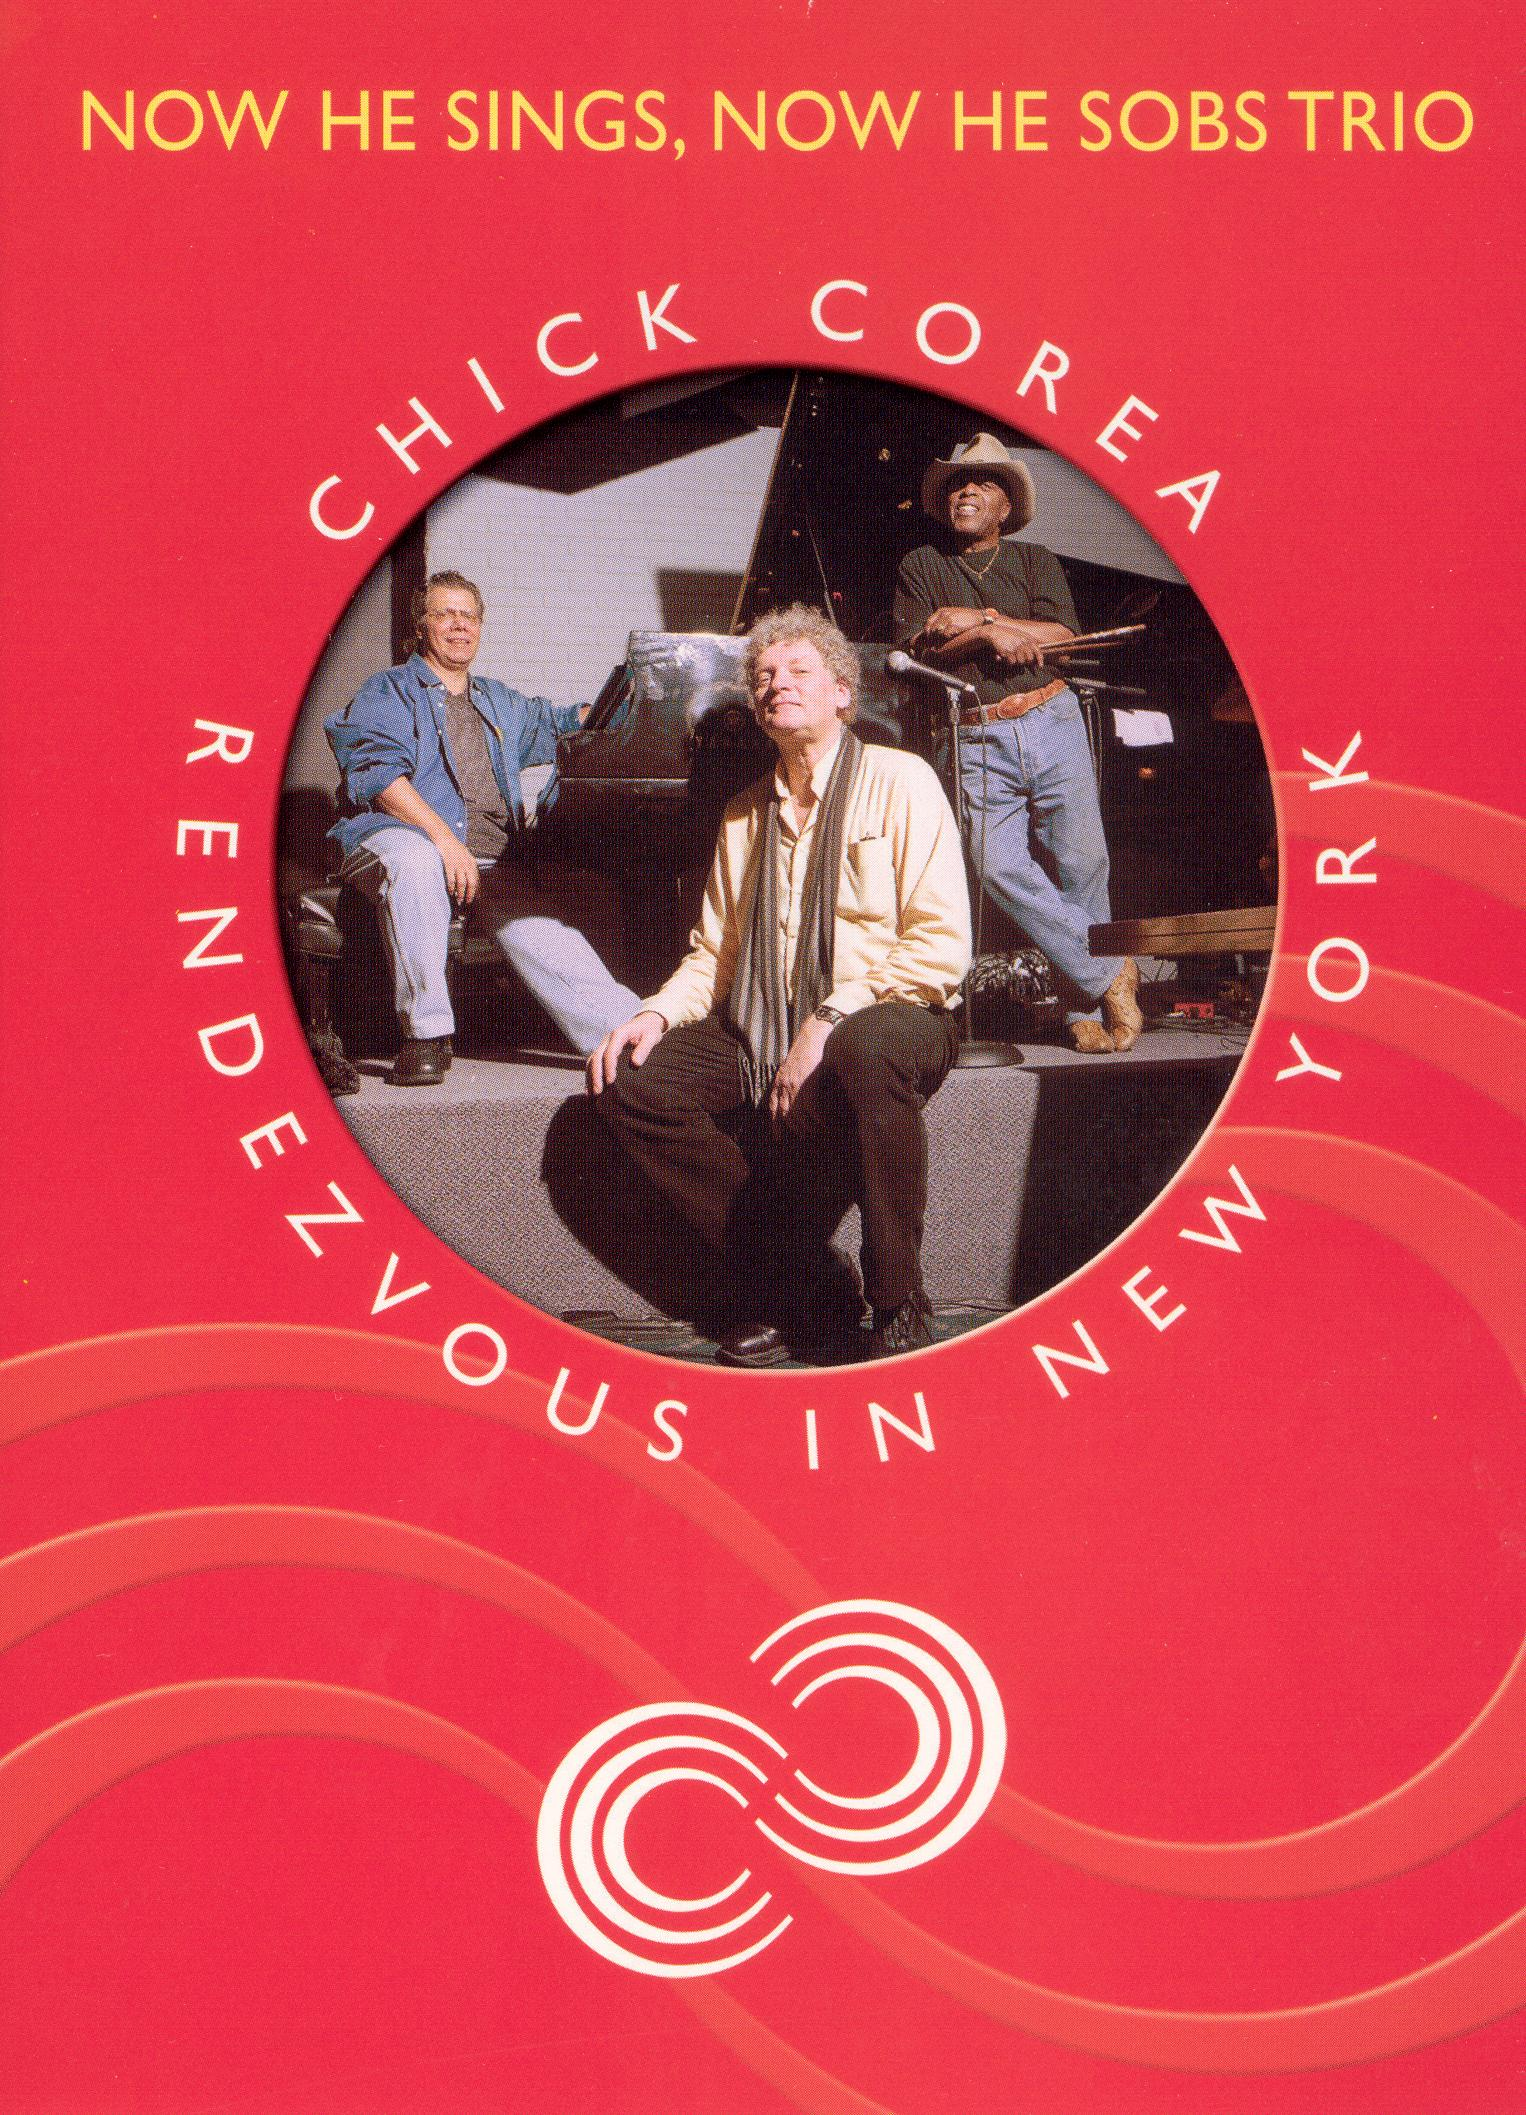 Chick Corea: Rendezvous in New York - Now He Sings, Now He Sobs Trio